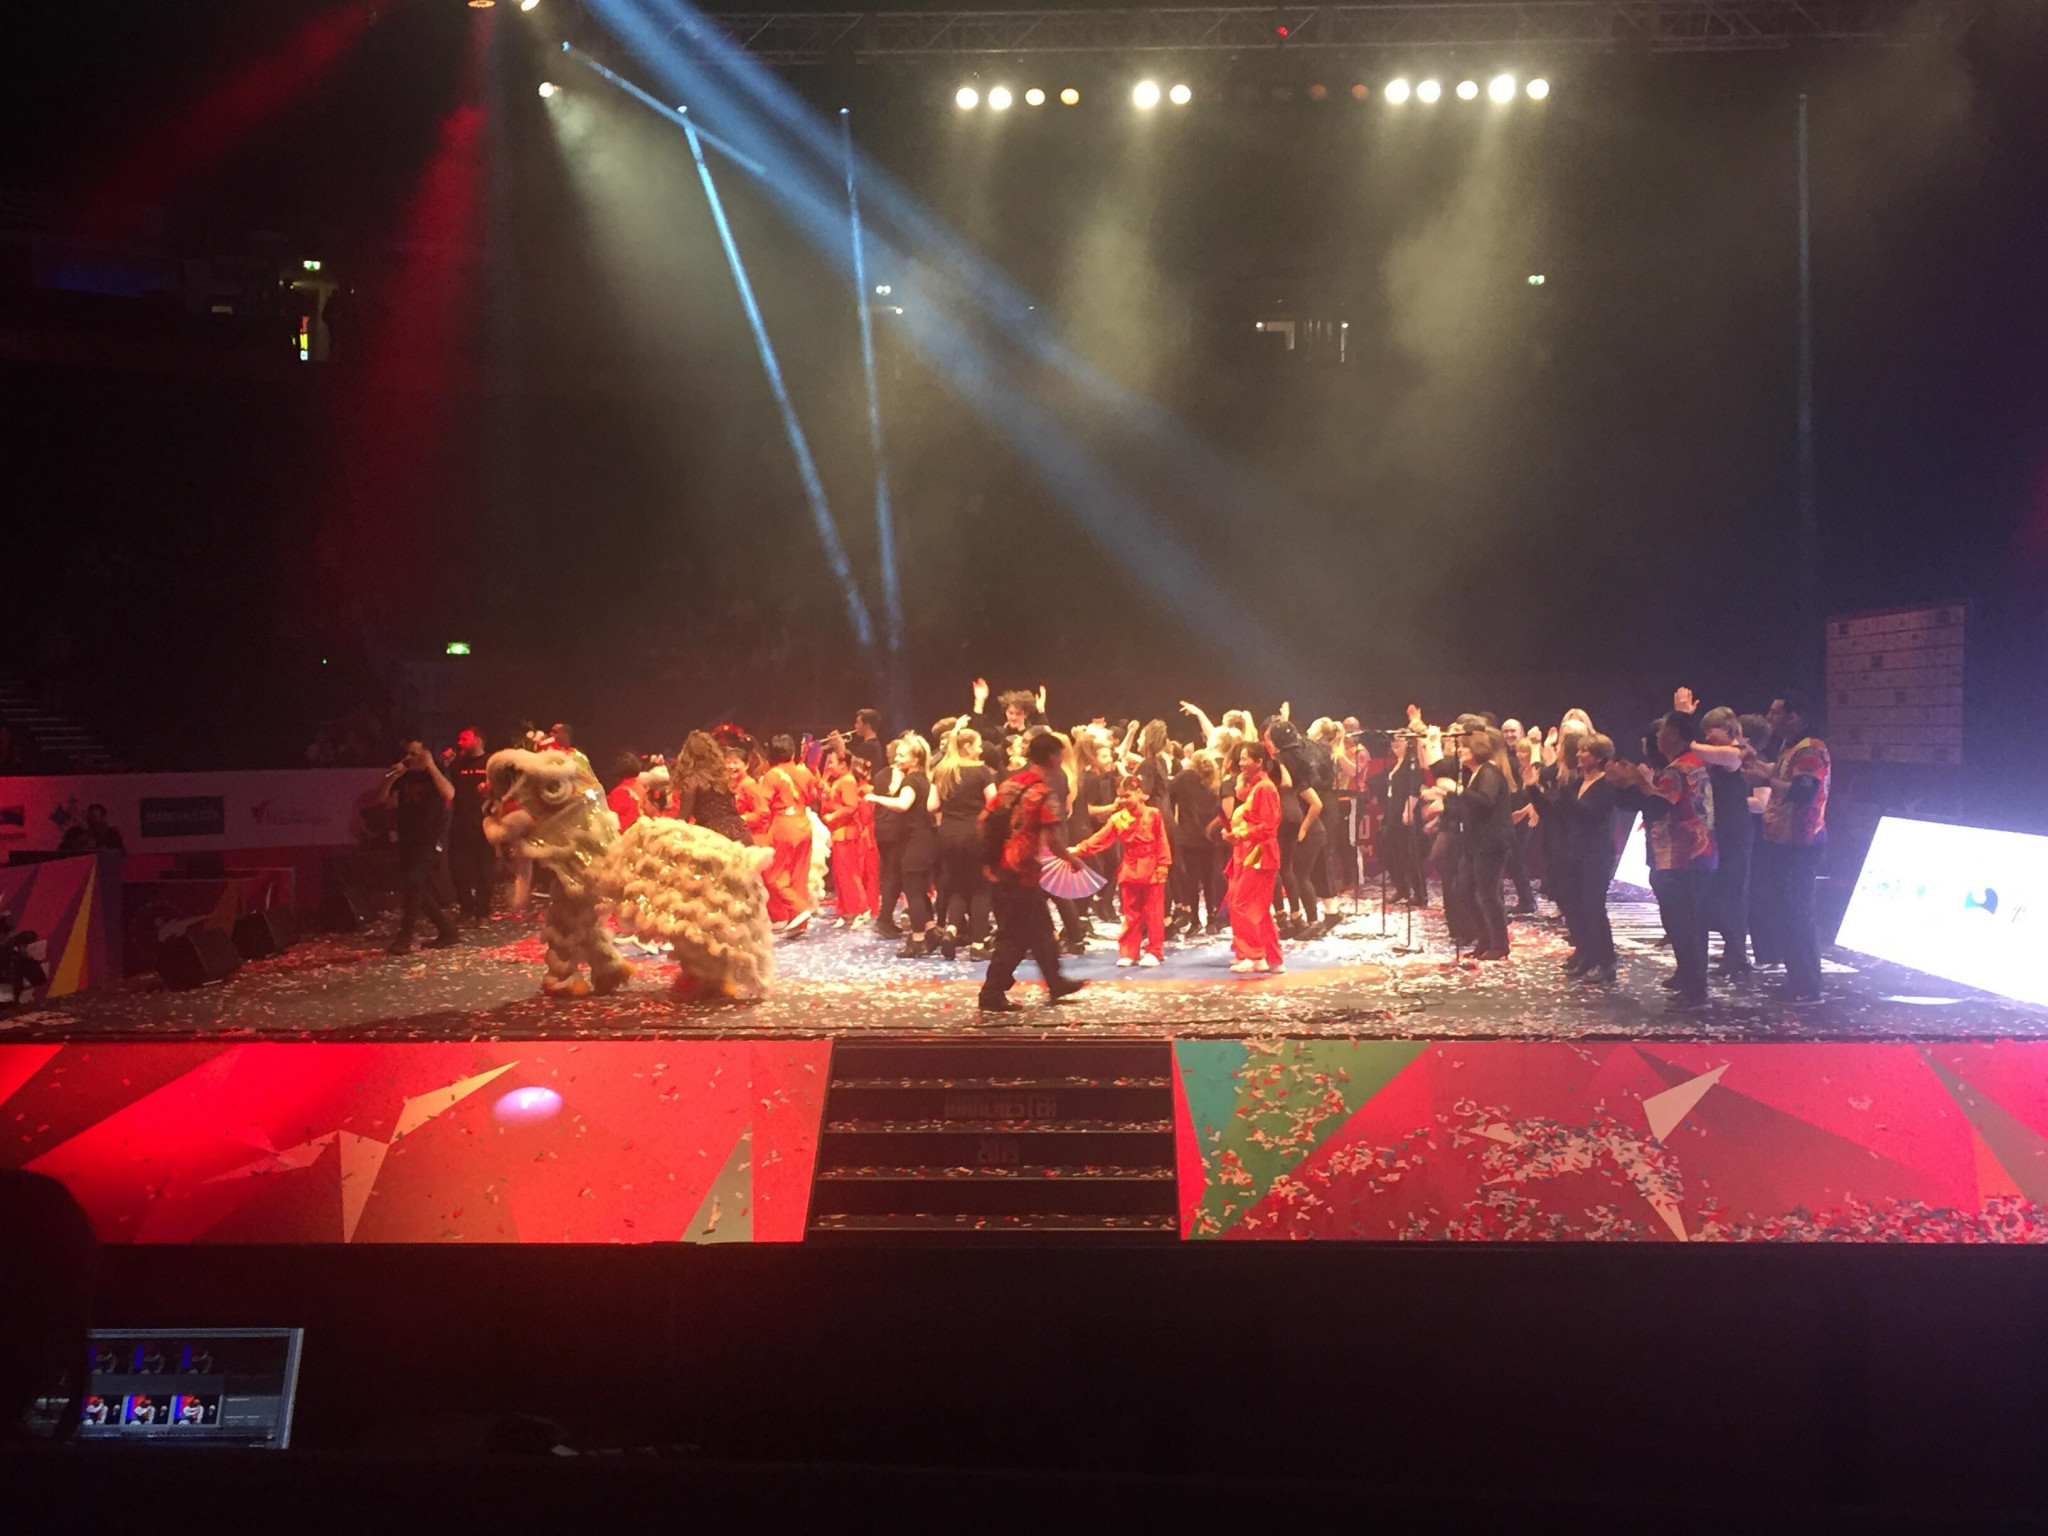 Closing Ceremony marks the end of the World Taekwondo Championships in Manchester